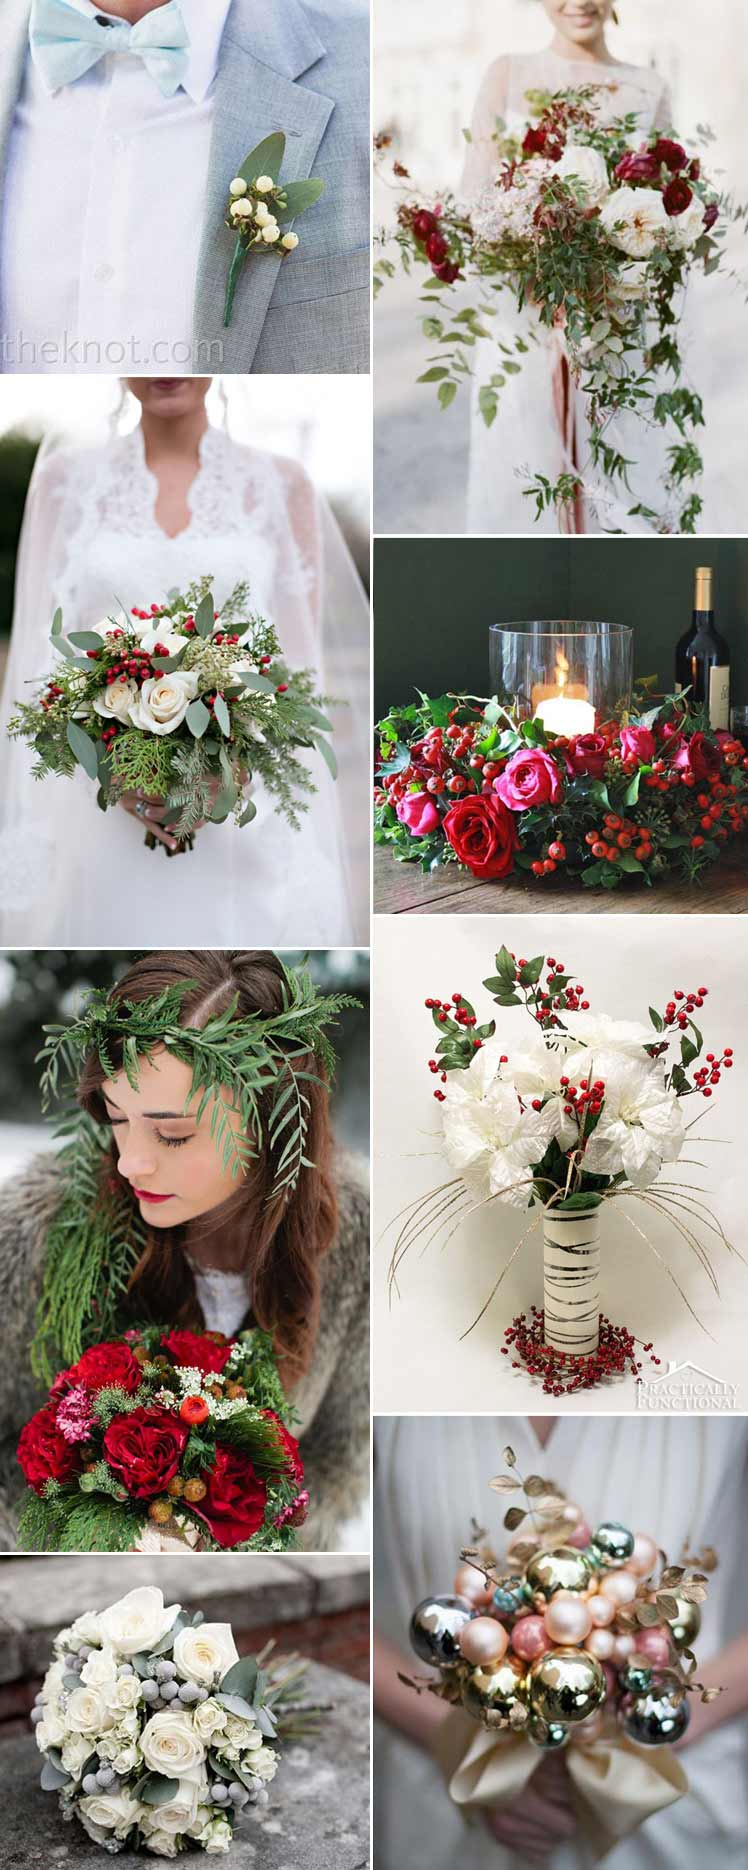 Christmas theme wedding flowers ideas